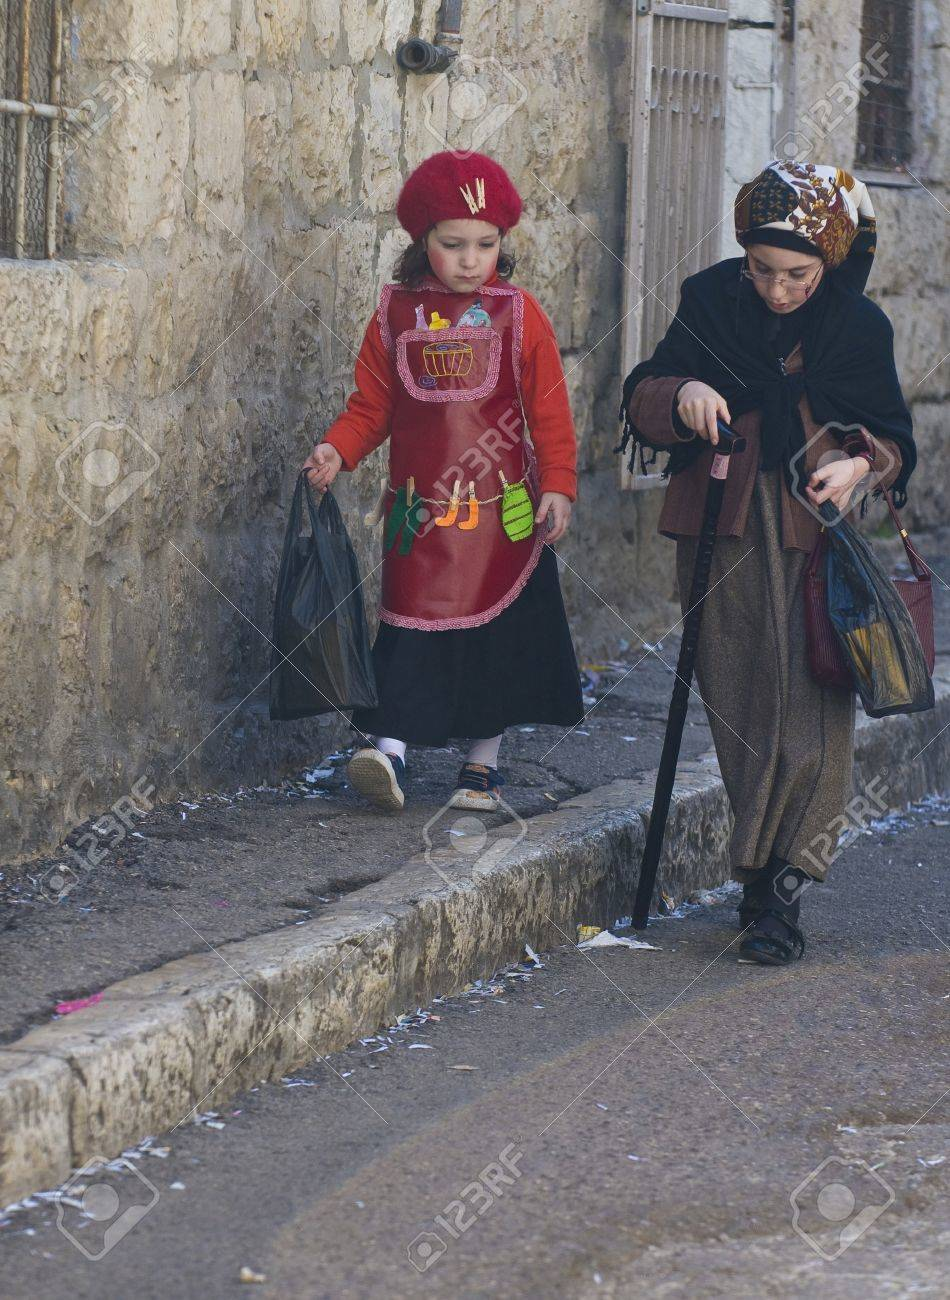 JERUSALEM - MARS 09 : Ultra Orthodox costumed children during Purim in Mea Shearim Jerusalem on Mars 09 2012 , Purim is a Jewish holiday celebrates the salvation of the jews from jenocide in ancient Persia  Stock Photo - 15079216